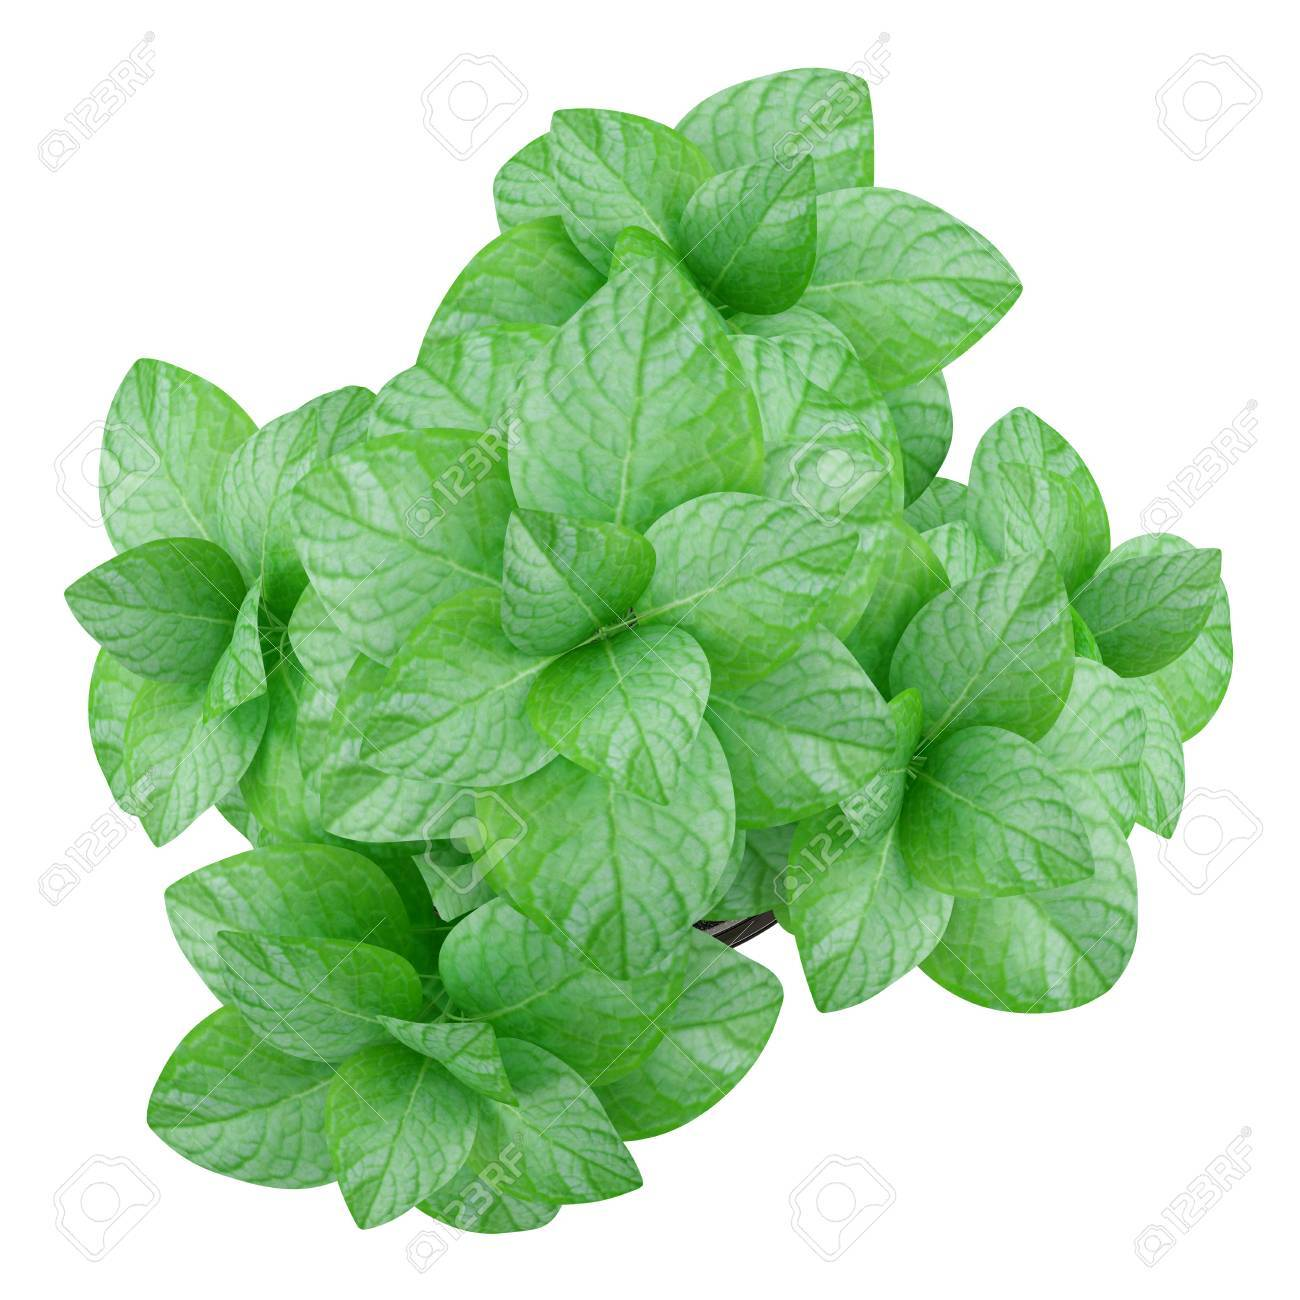 Plant De Menthe En Pot top view of mint plant in pot isolated on white background